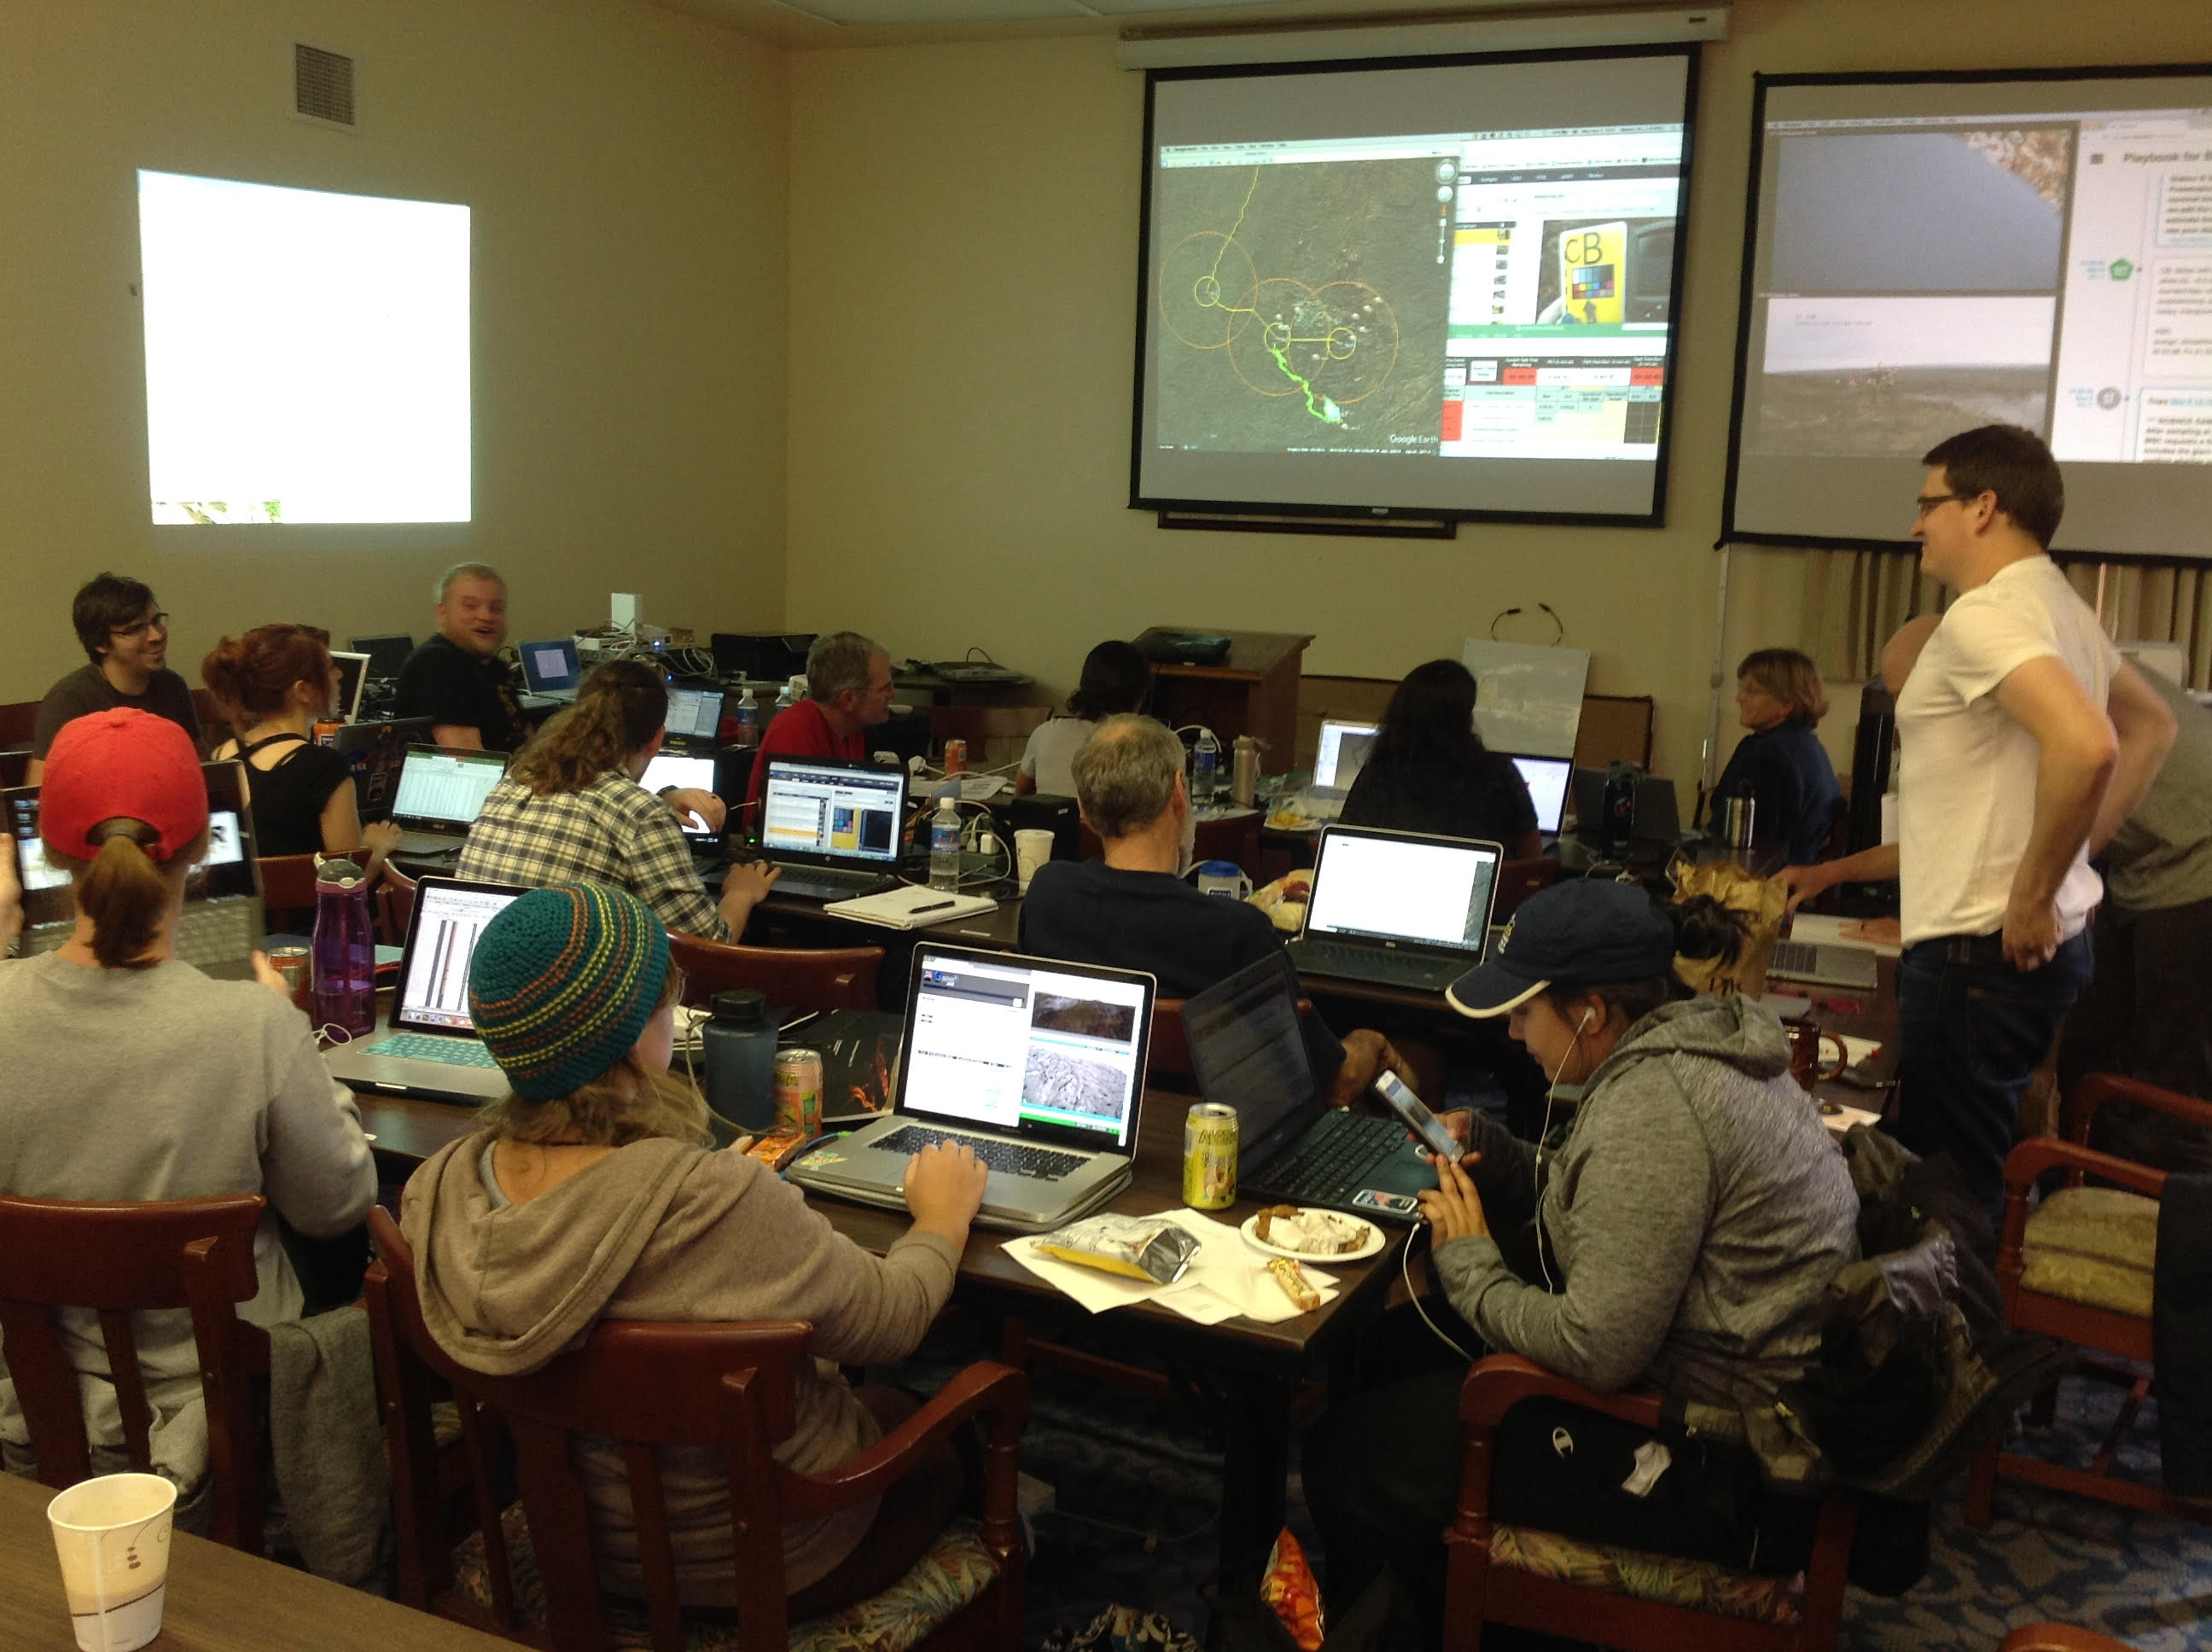 About a dozen people at desks working on laptops, a mapping image is on an overhead screen at the front of the room.